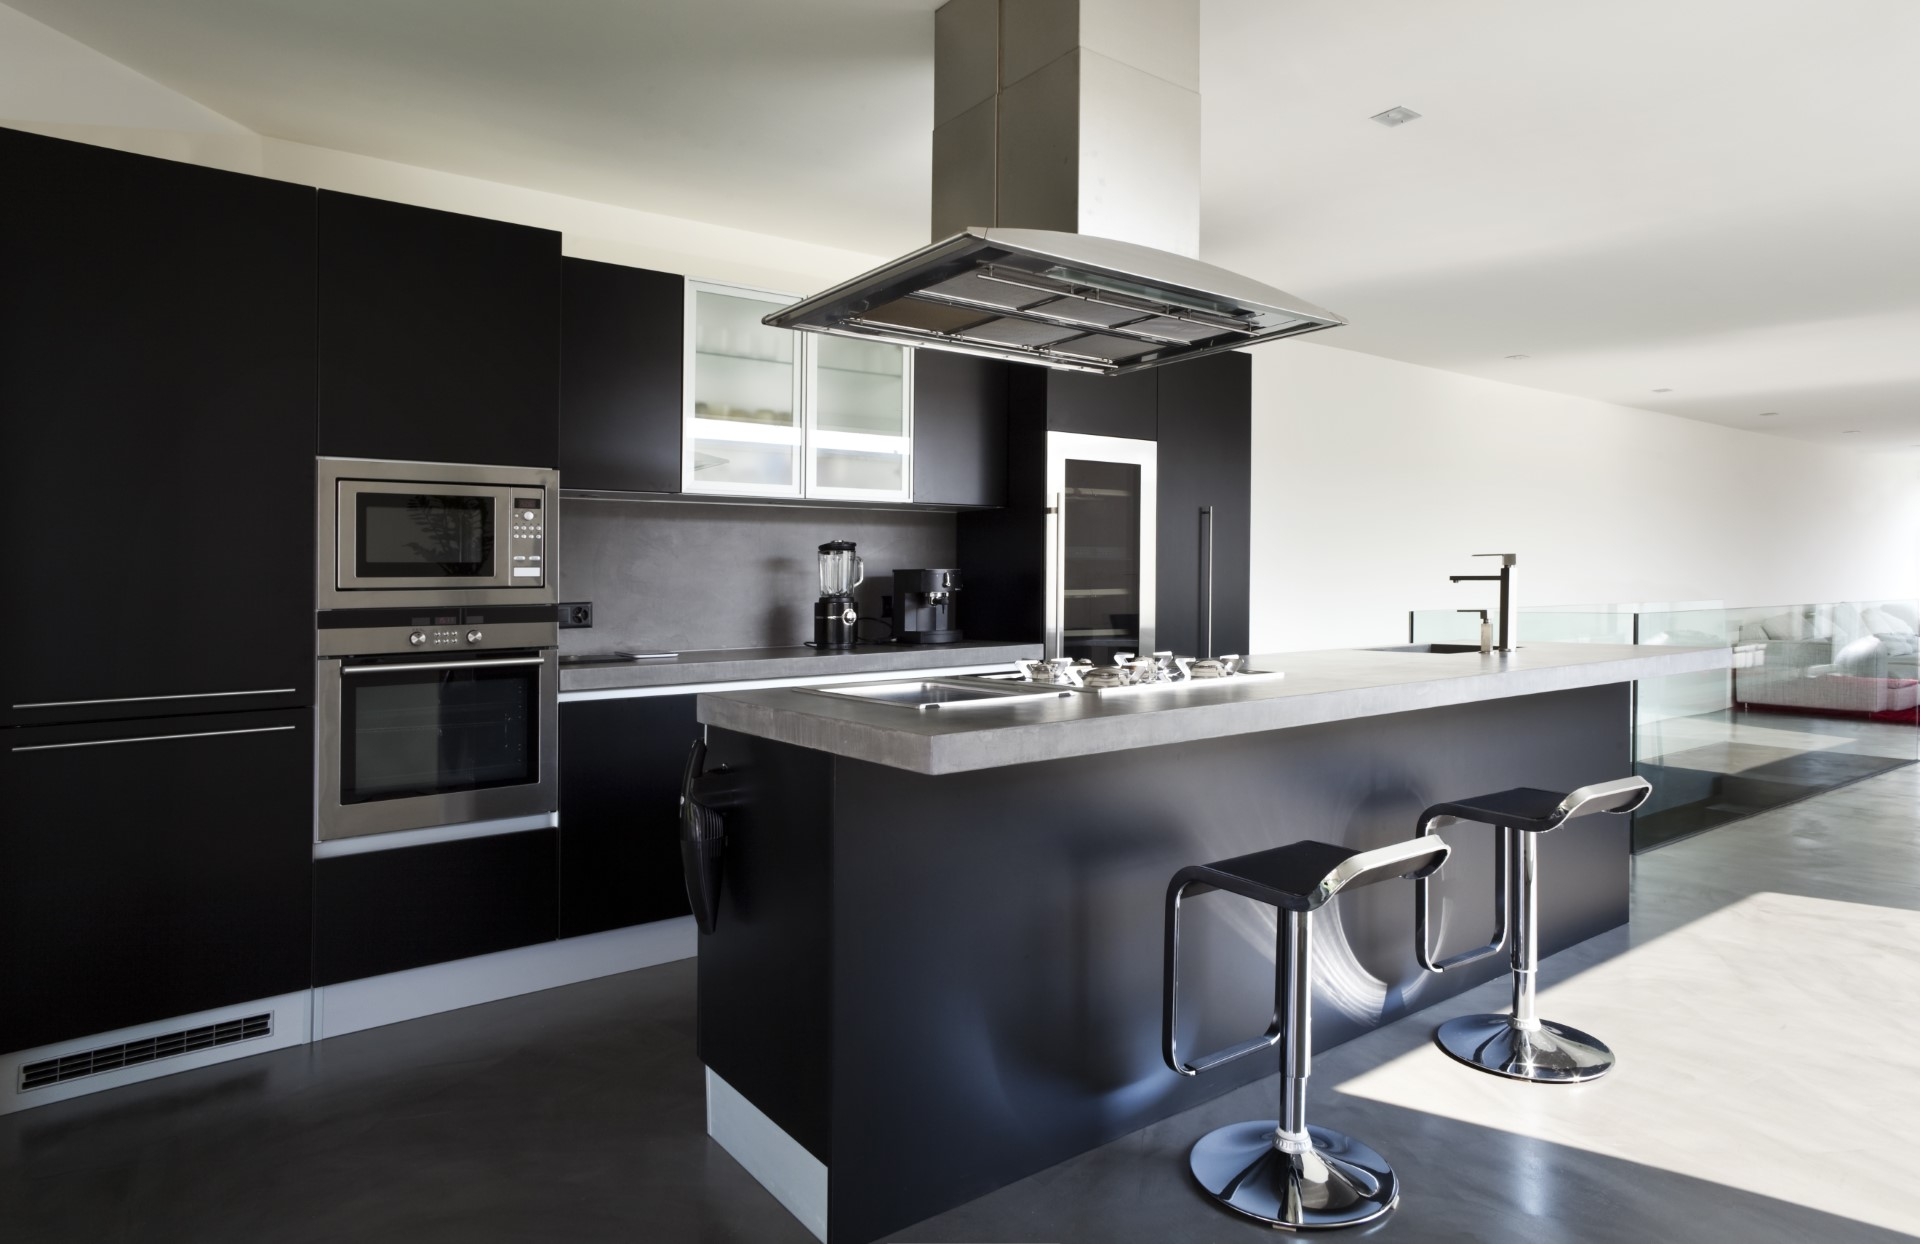 Dark cabinets carry the functionality of being low maintenance and seemingly always looking good. They're great at hiding finger prints and when you add in stainless steel, it makes it shine.